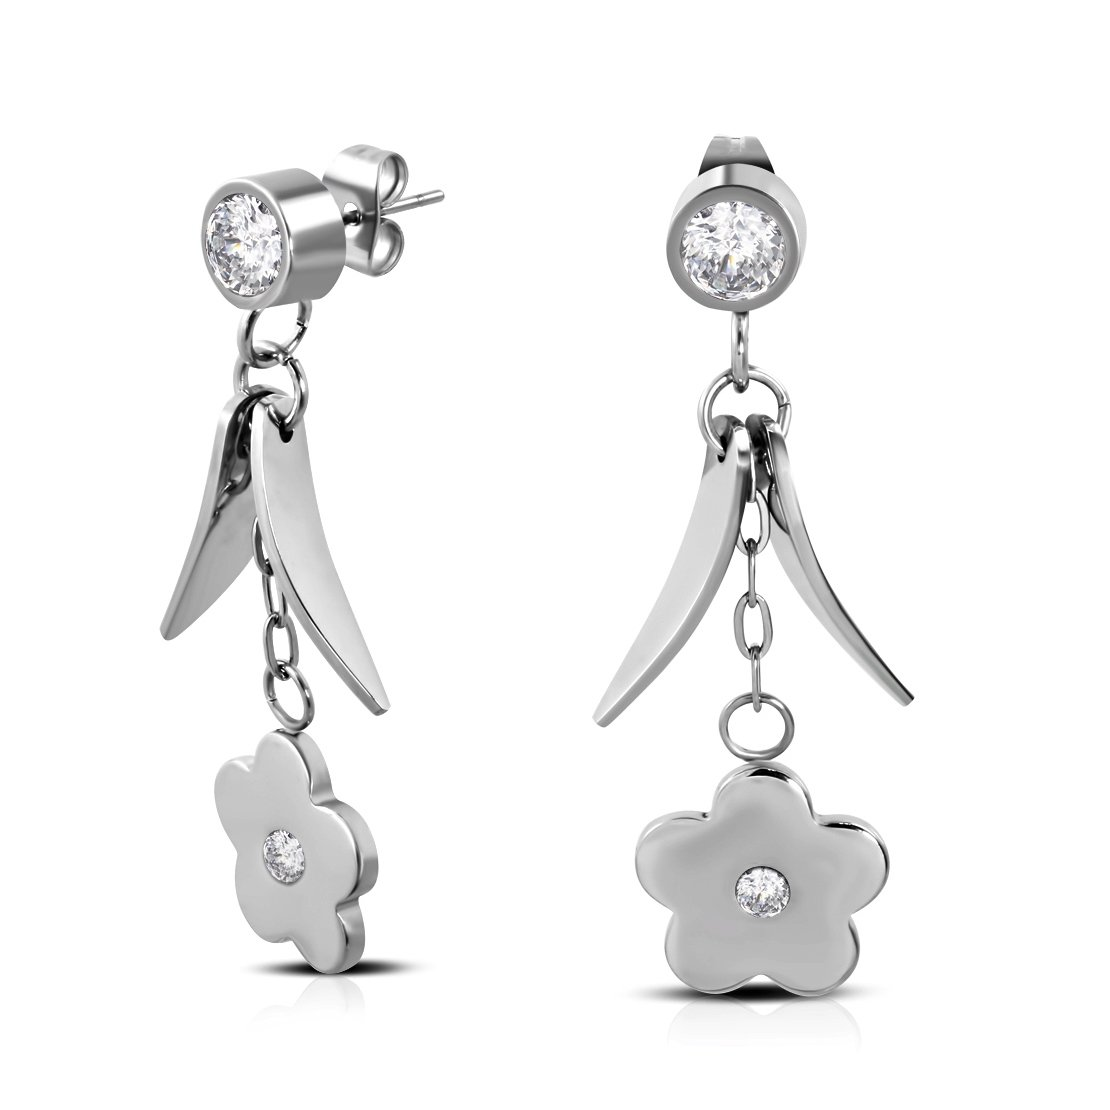 pair Stainless Steel Flower Long Drop Stud Earrings with Clear CZ